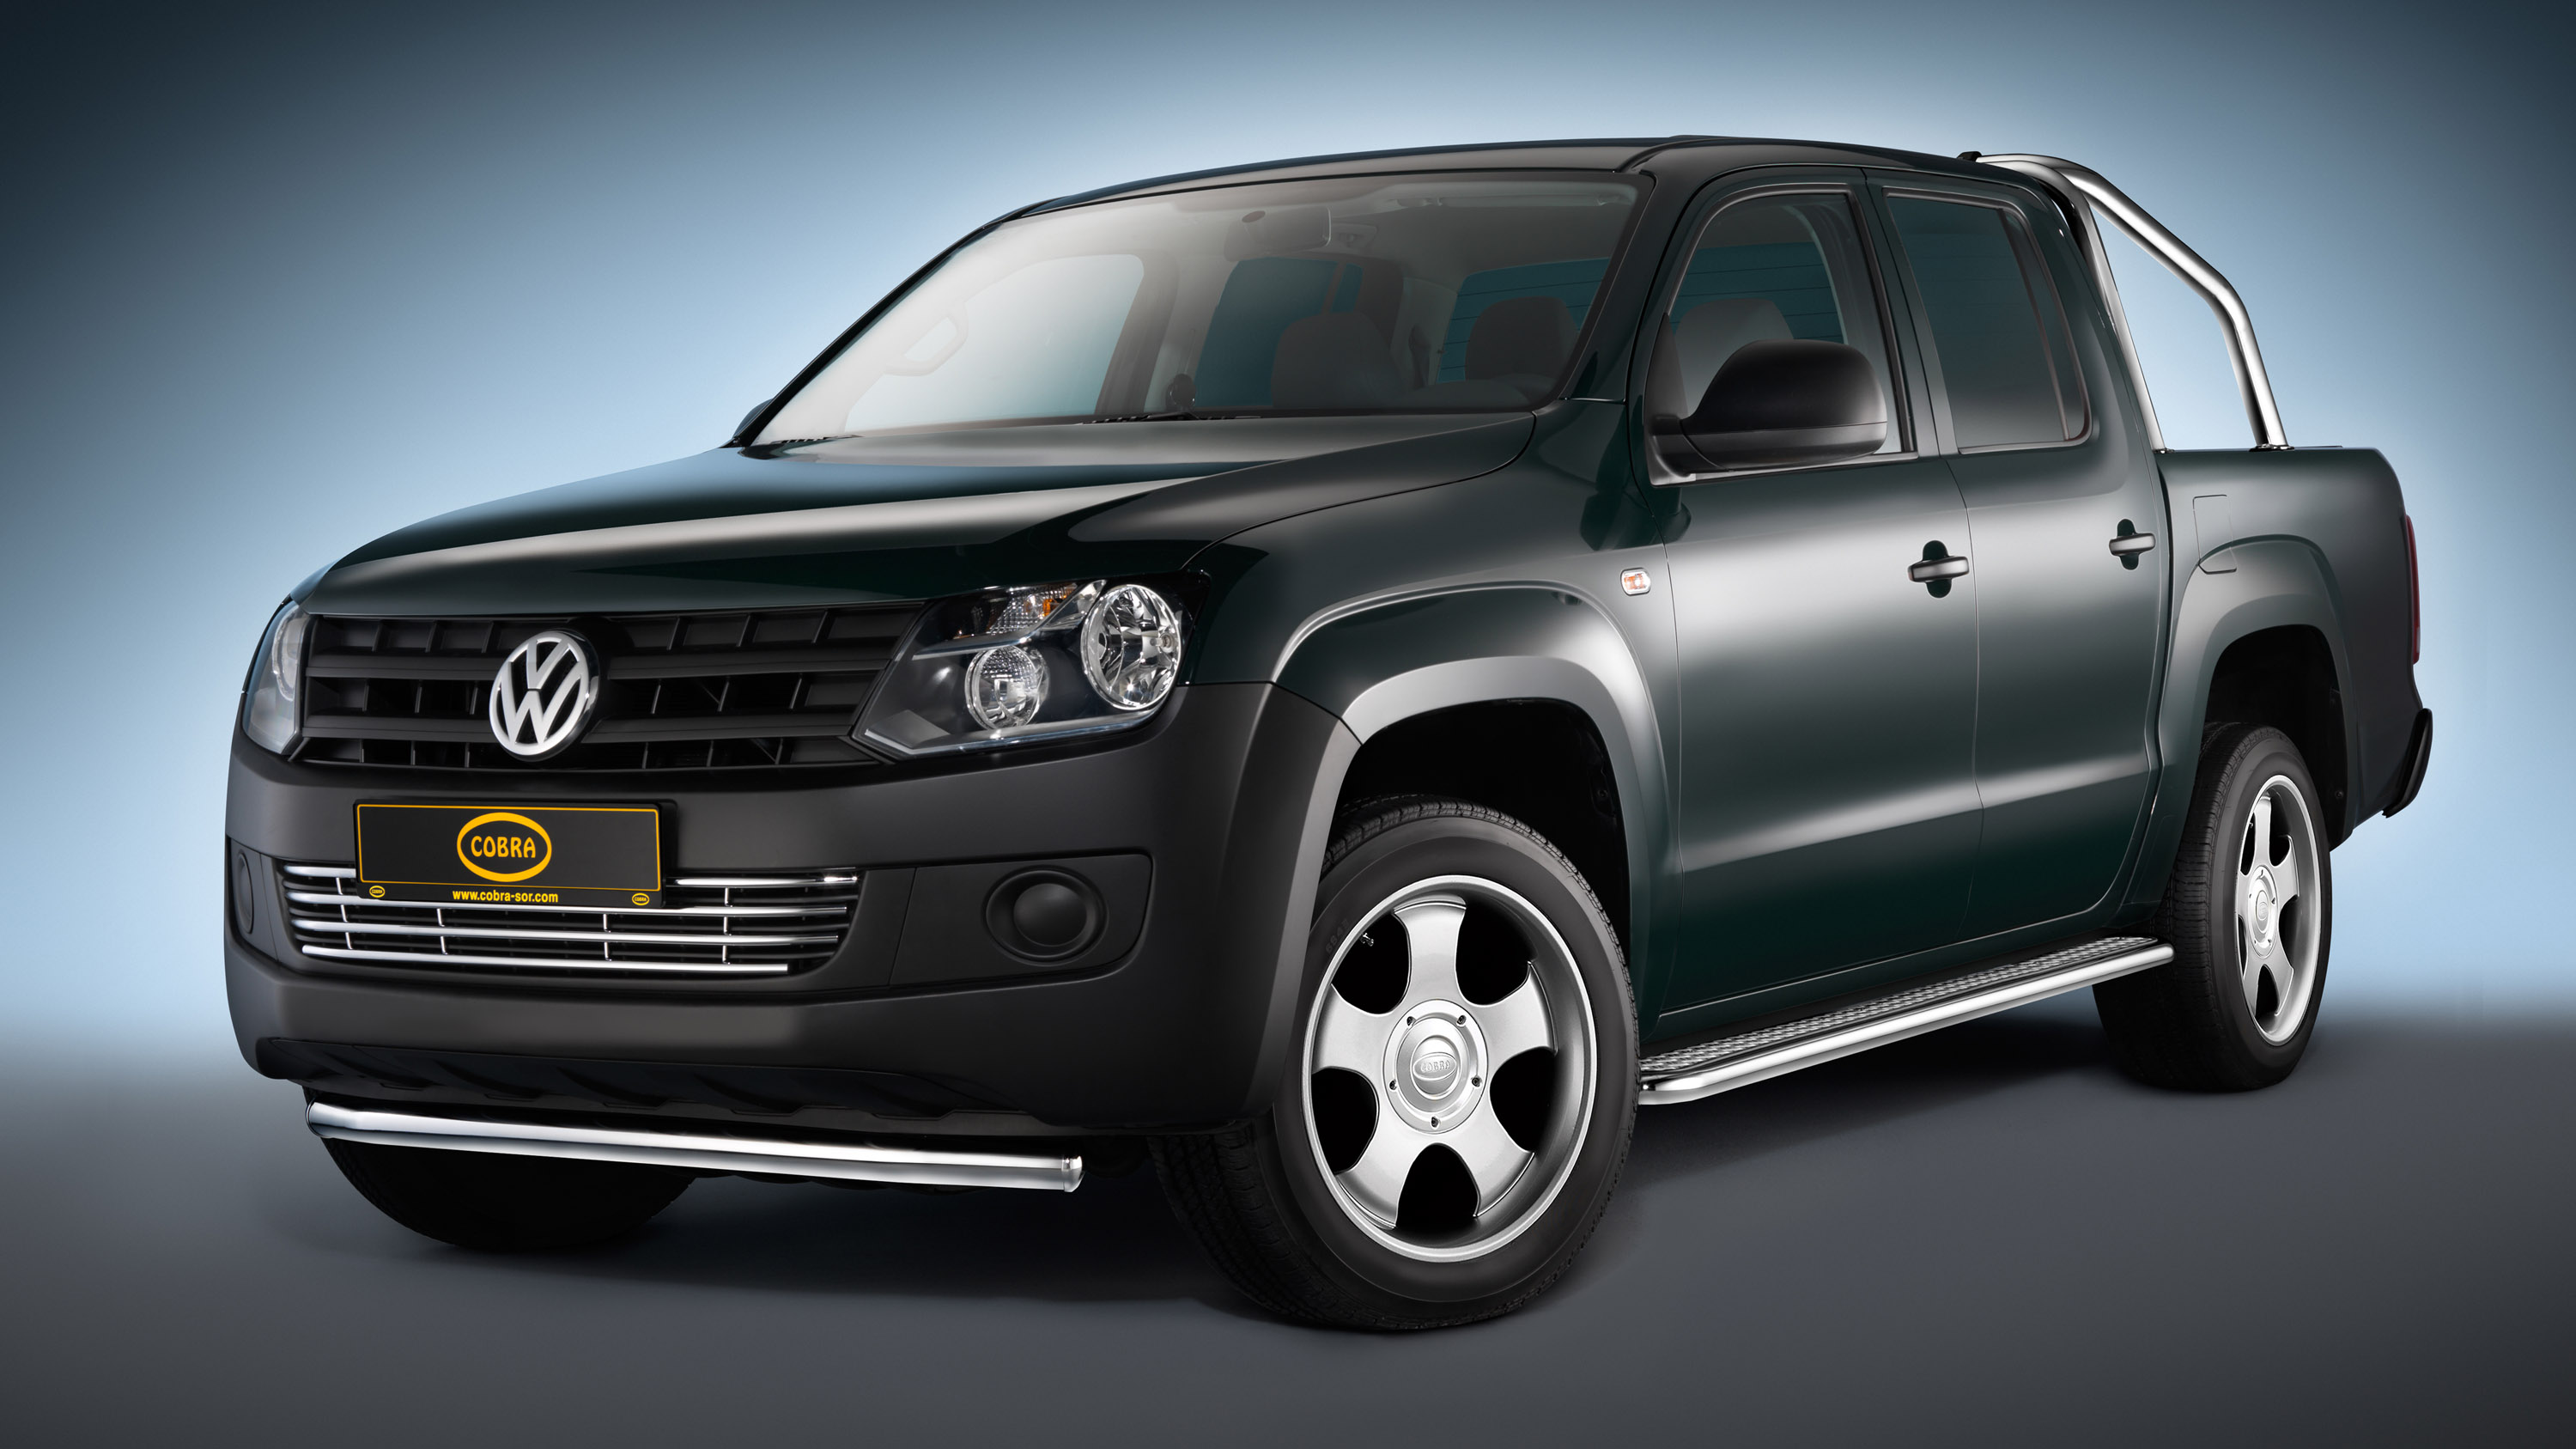 cobra volkswagen amarok pickup picture 46141. Black Bedroom Furniture Sets. Home Design Ideas